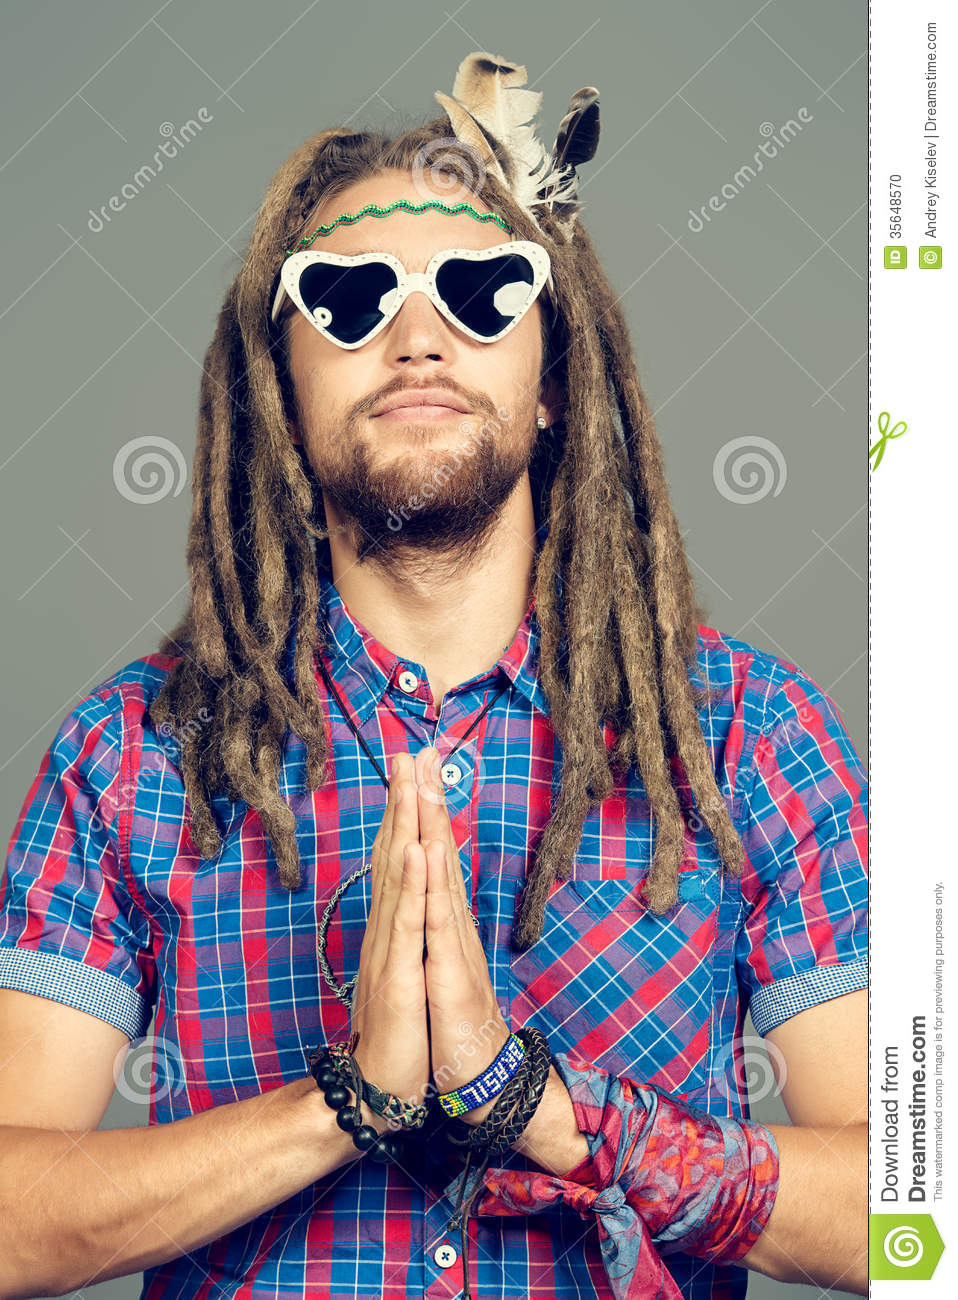 Meditating Hippie Stock Photo Image 35648570